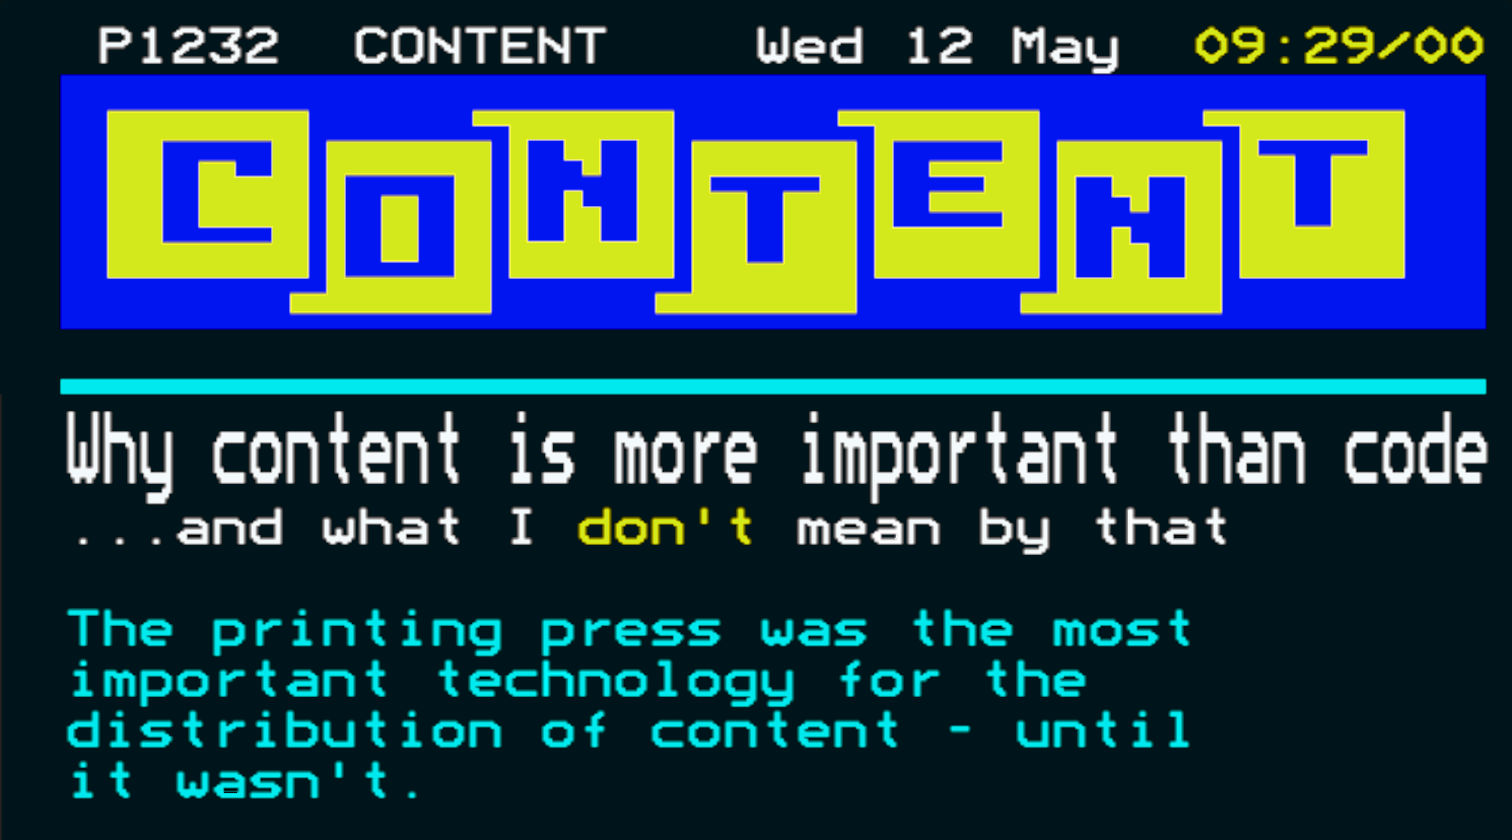 """Mock-up of a Ceefax page with the word """"content"""" instead of """"Ceefax"""""""